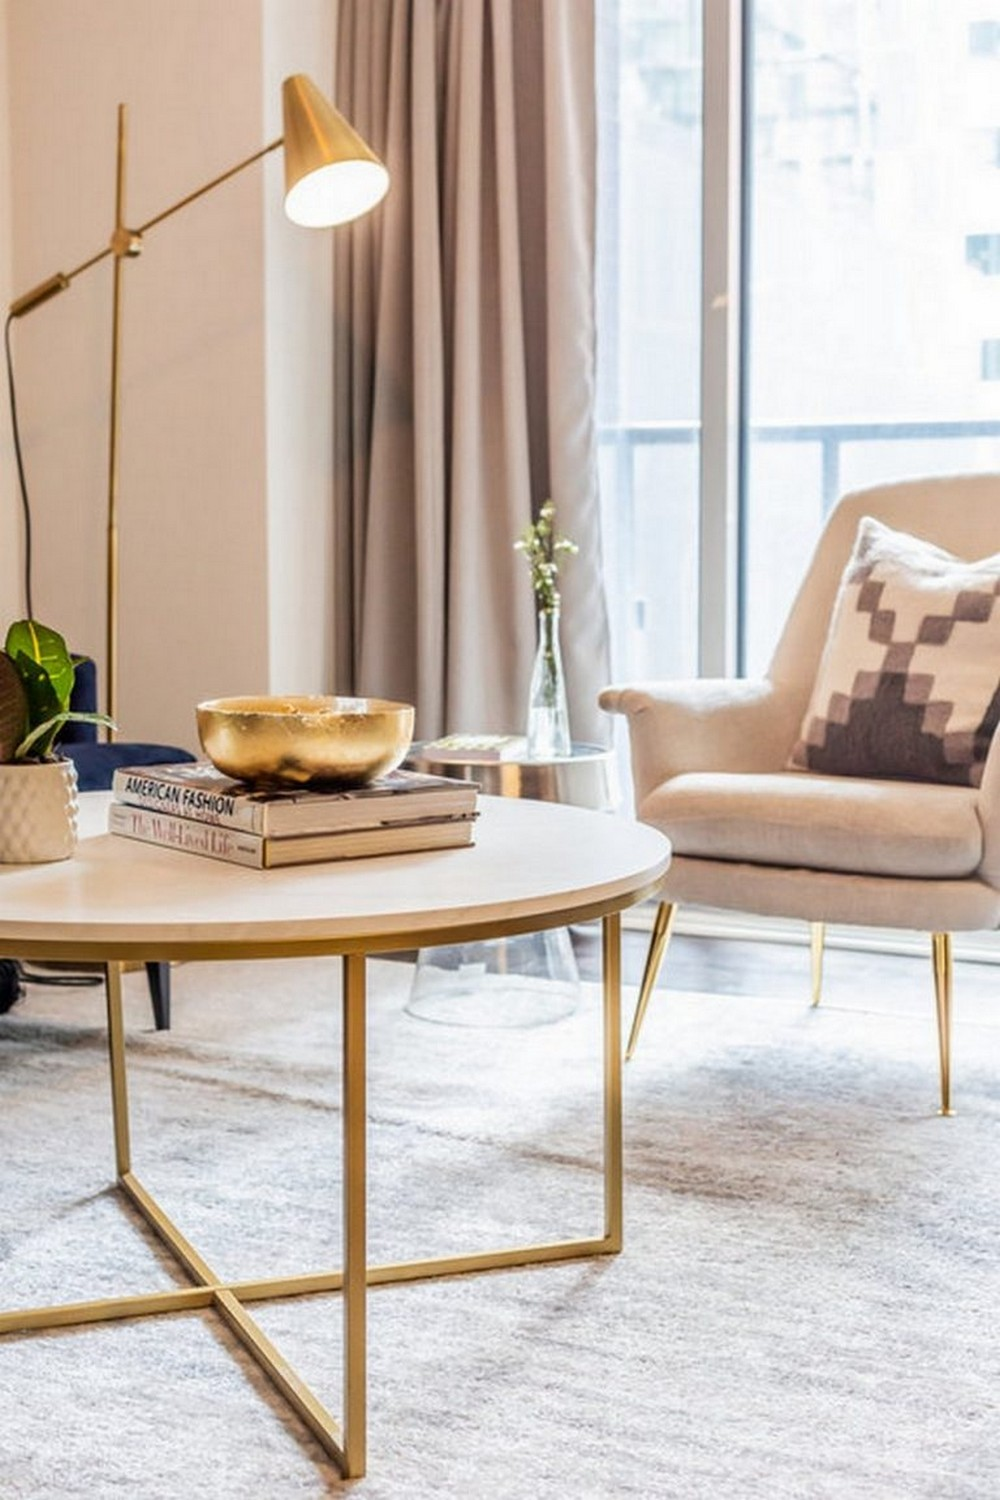 Jaclyn Genovese Is One Of The Top Interior Design Influencers jaclyn genovese Jaclyn Genovese Is One Of The Top Interior Design Influencers Jaclyn Genovese Is One Of The Top Interior Design Influencers 6